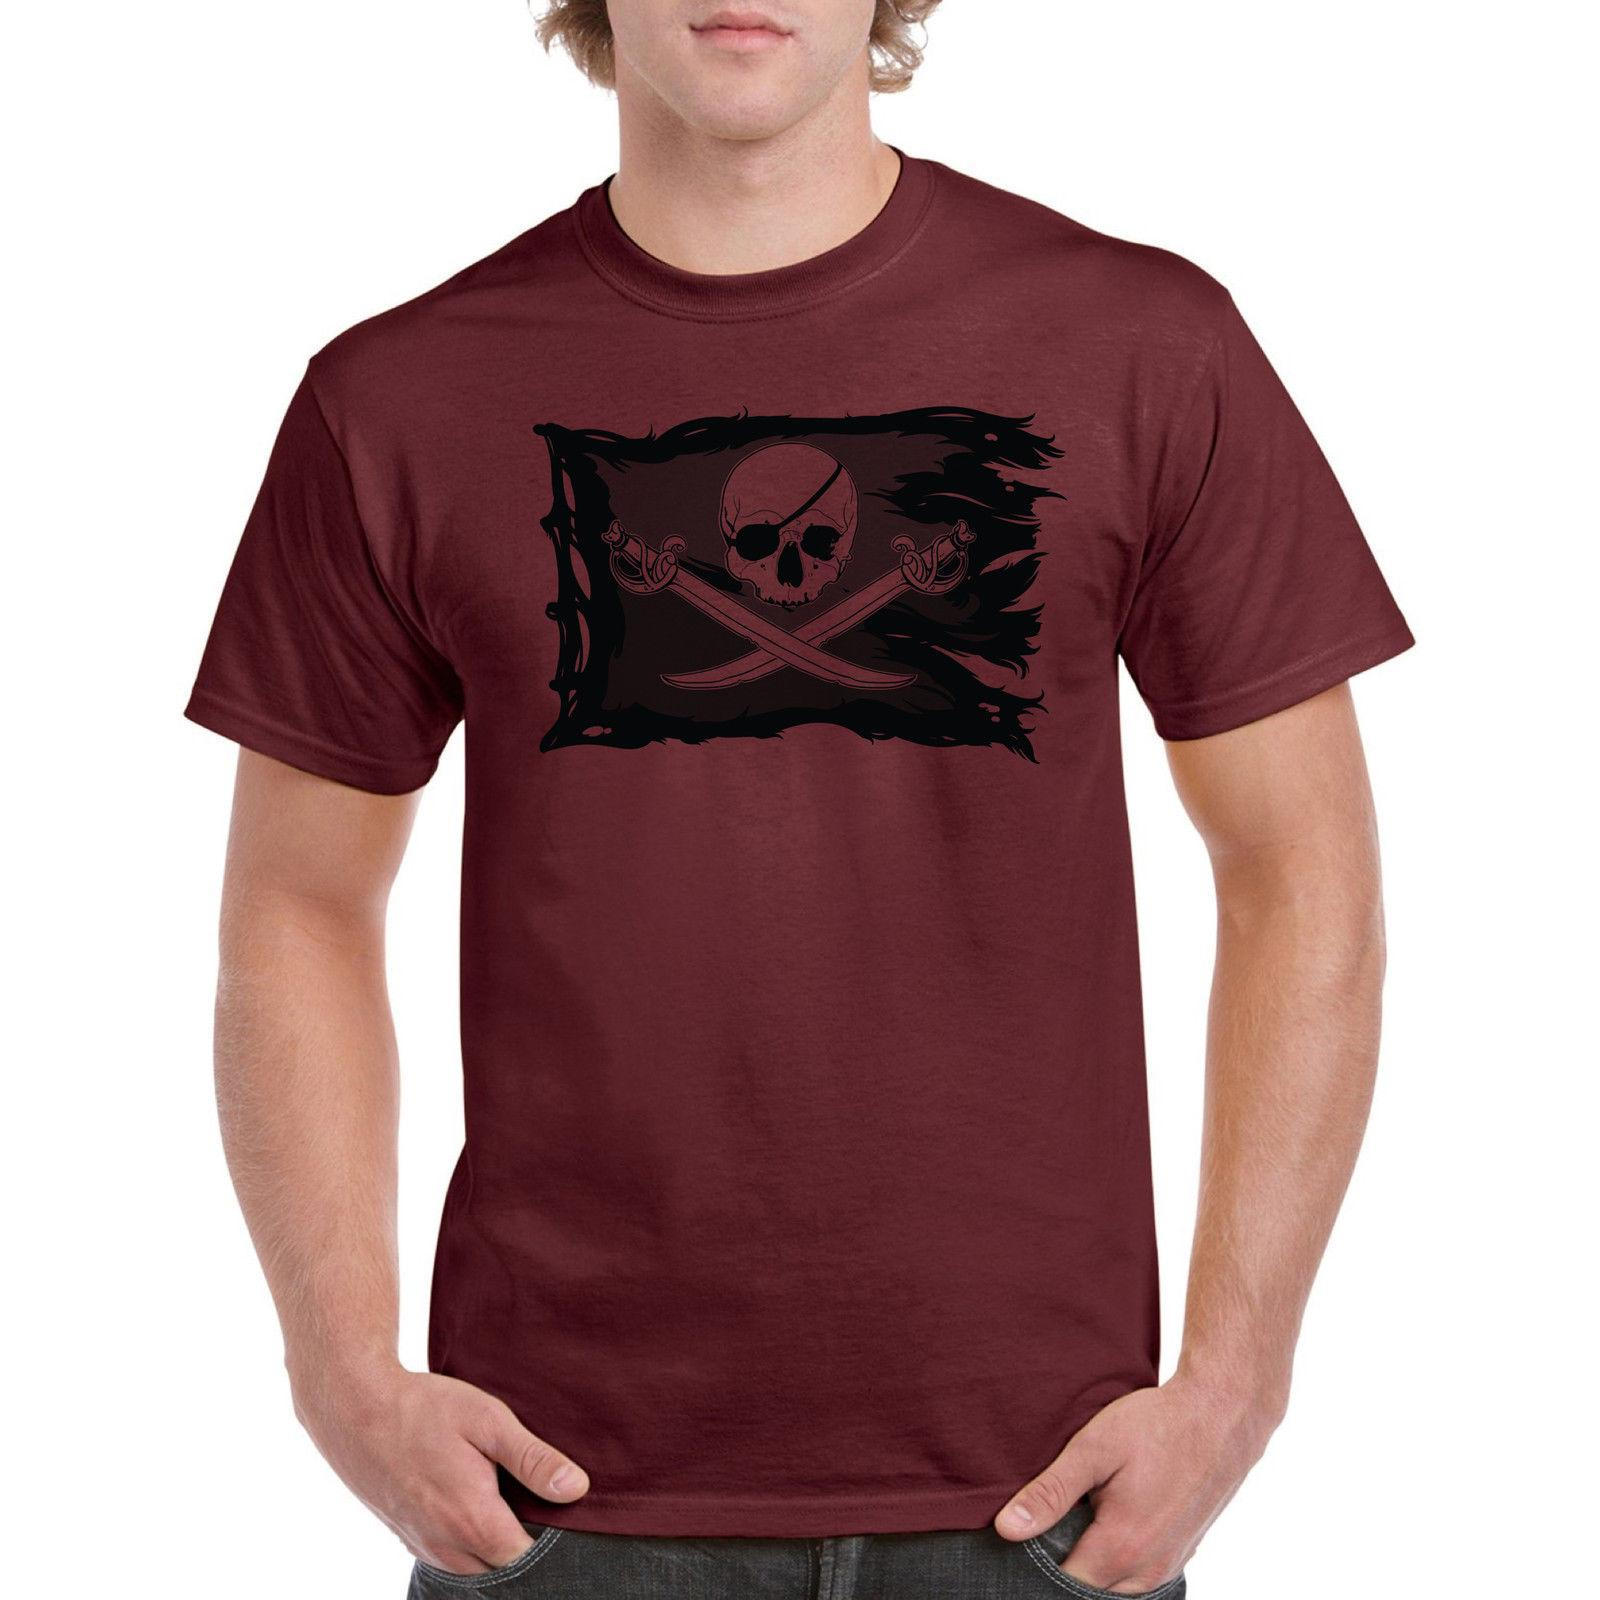 124f6eb8131 Pirate Flag Tee Shirt Skull Men T Shirt Funny Shirts Sea Ocean Sail On Boat  Funny Unisex Casual Tshirt Online Shopping T Shirt Cool Shirts Online From  ...